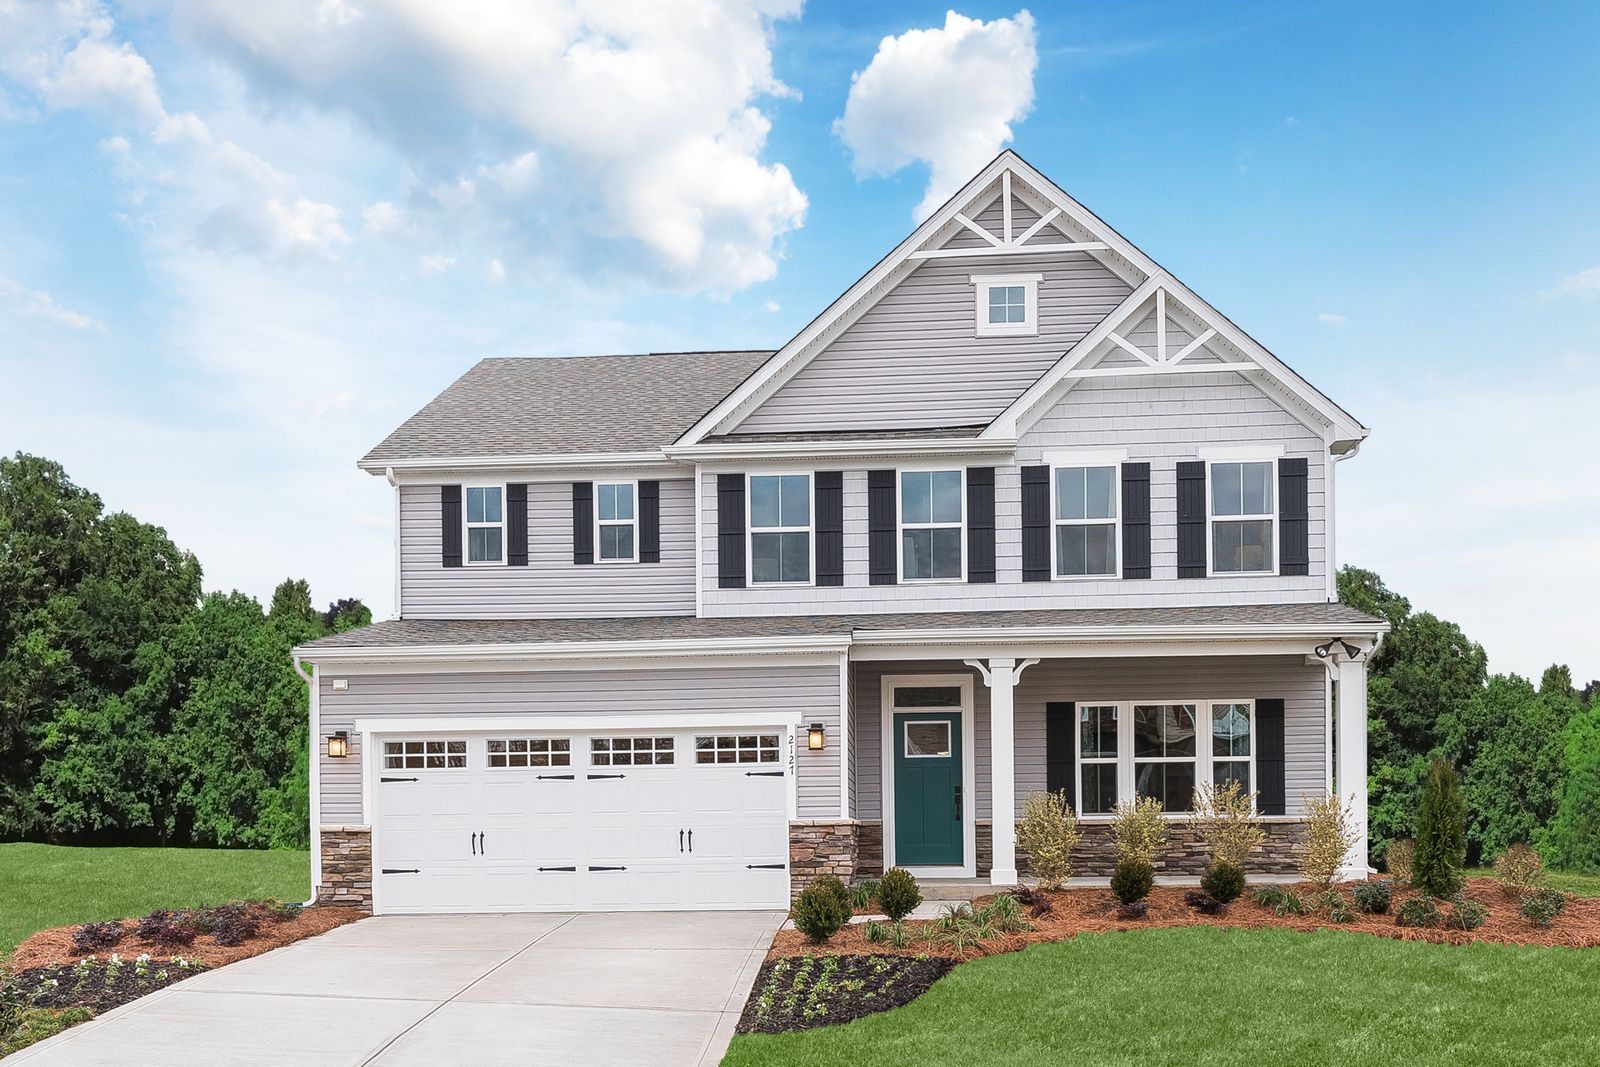 Own a new home near Hickory Ridge Schools and I-485:Live close to Hickory Ridge Schools with world-class amenities for an excellent value.Schedule a visit to learn more!